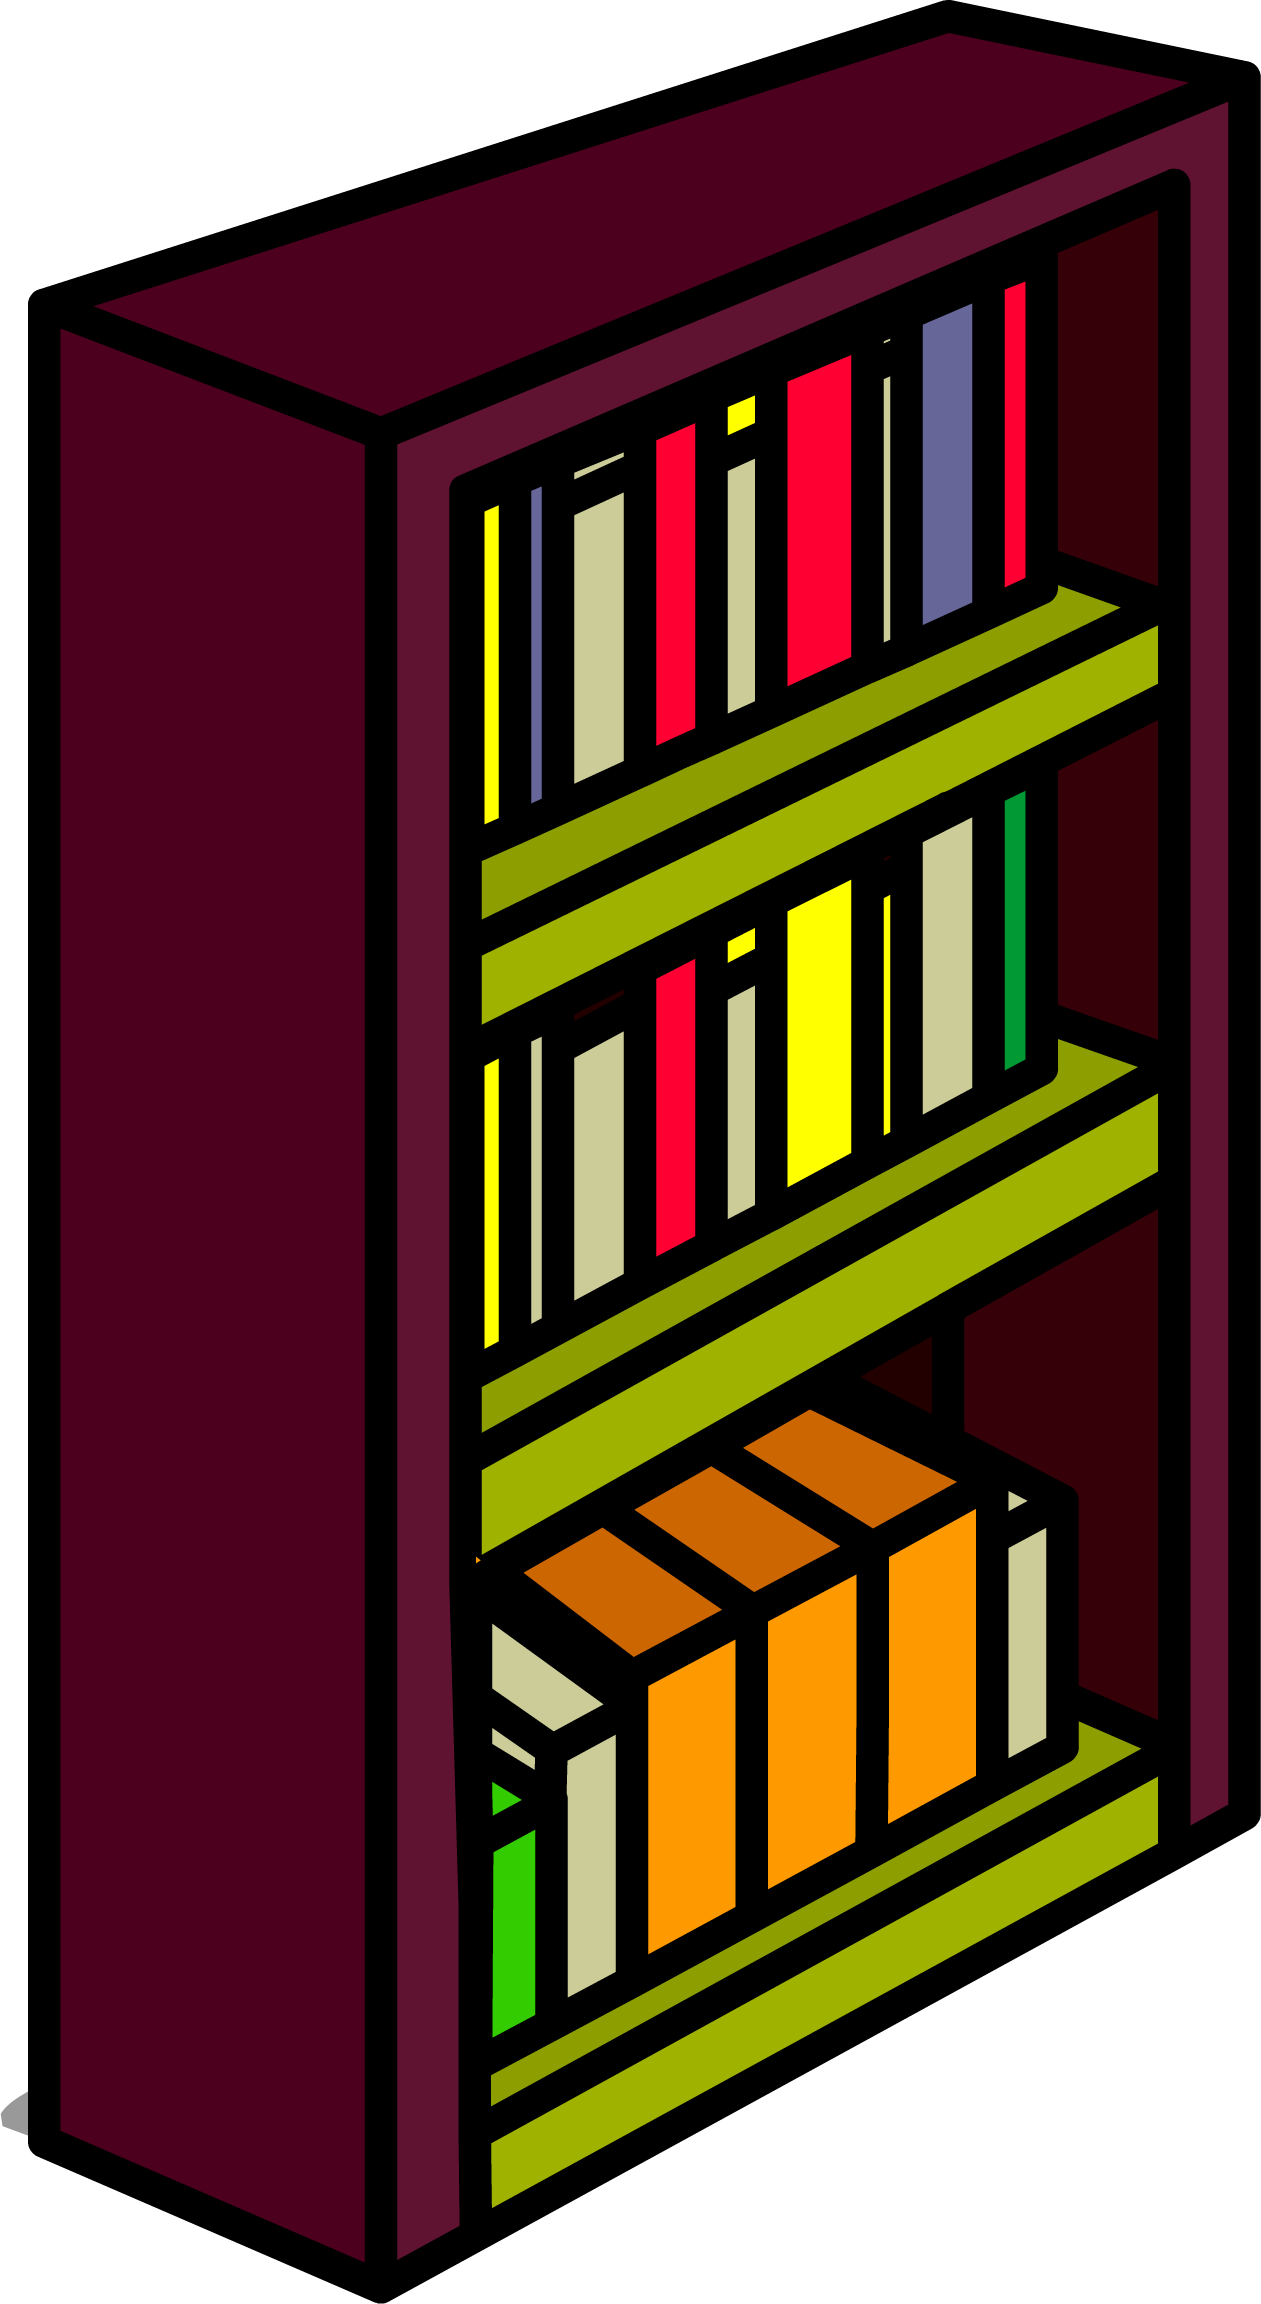 collection of png. Furniture clipart bookshelf